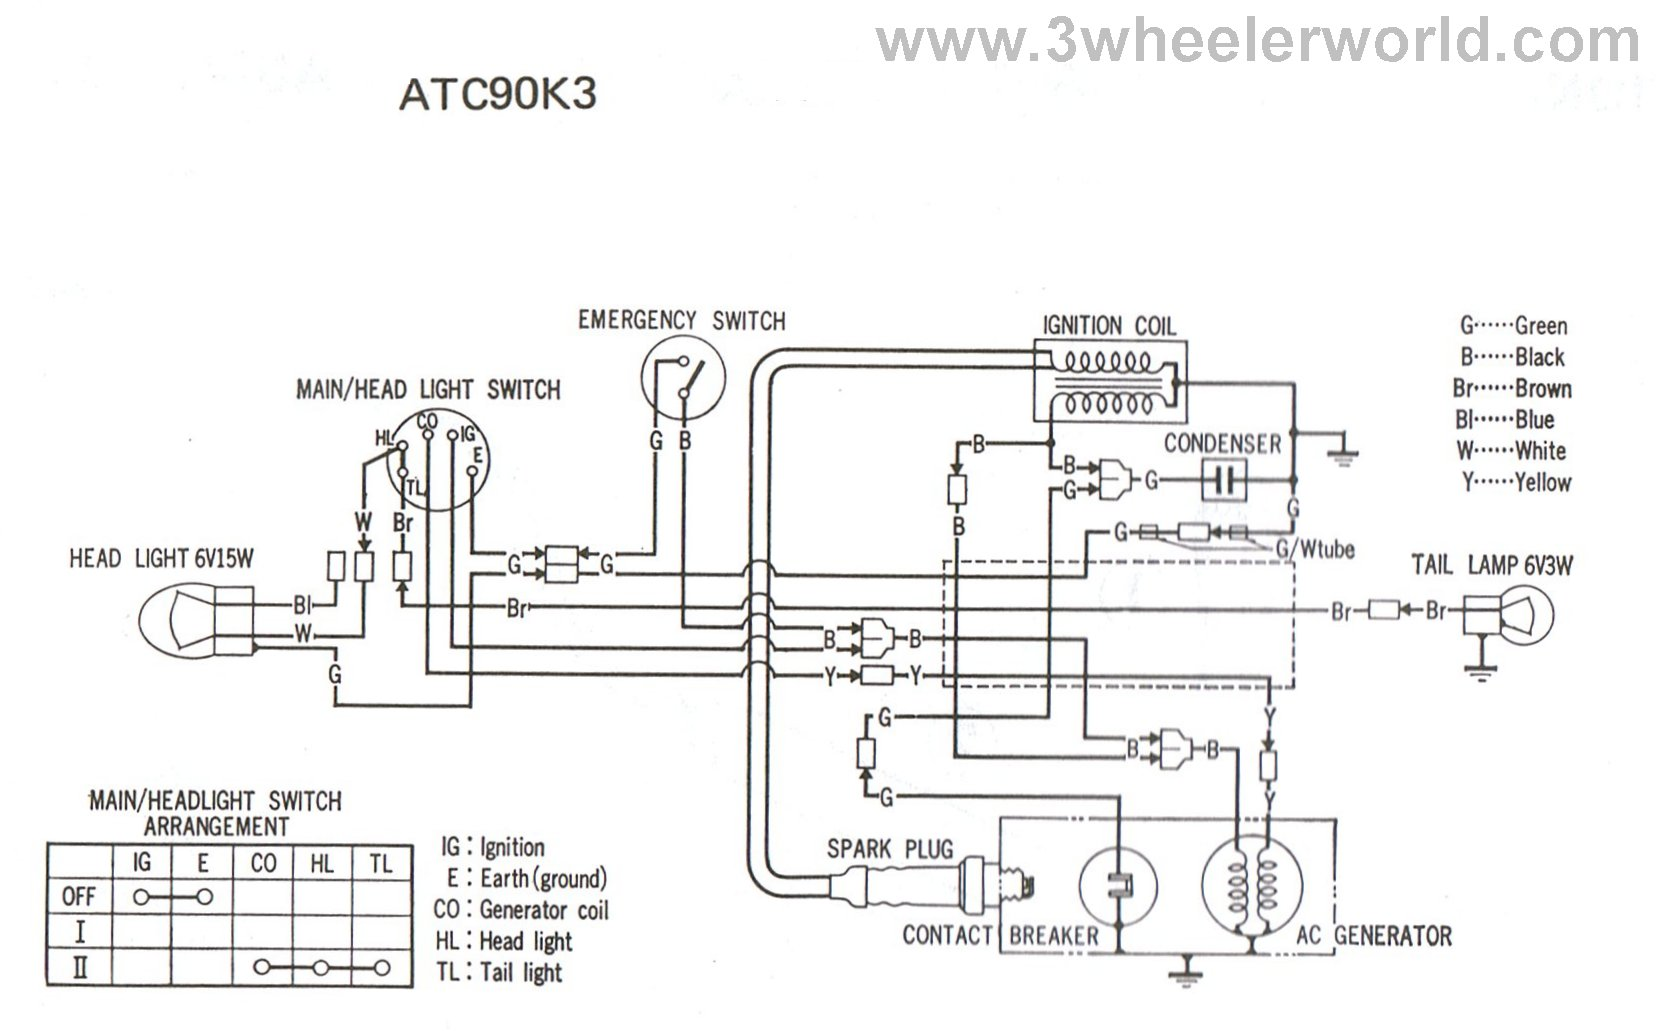 ATC90K3HM 3 wheeler world tech help honda wiring diagrams 1995 honda fourtrax 300 wiring diagram at nearapp.co